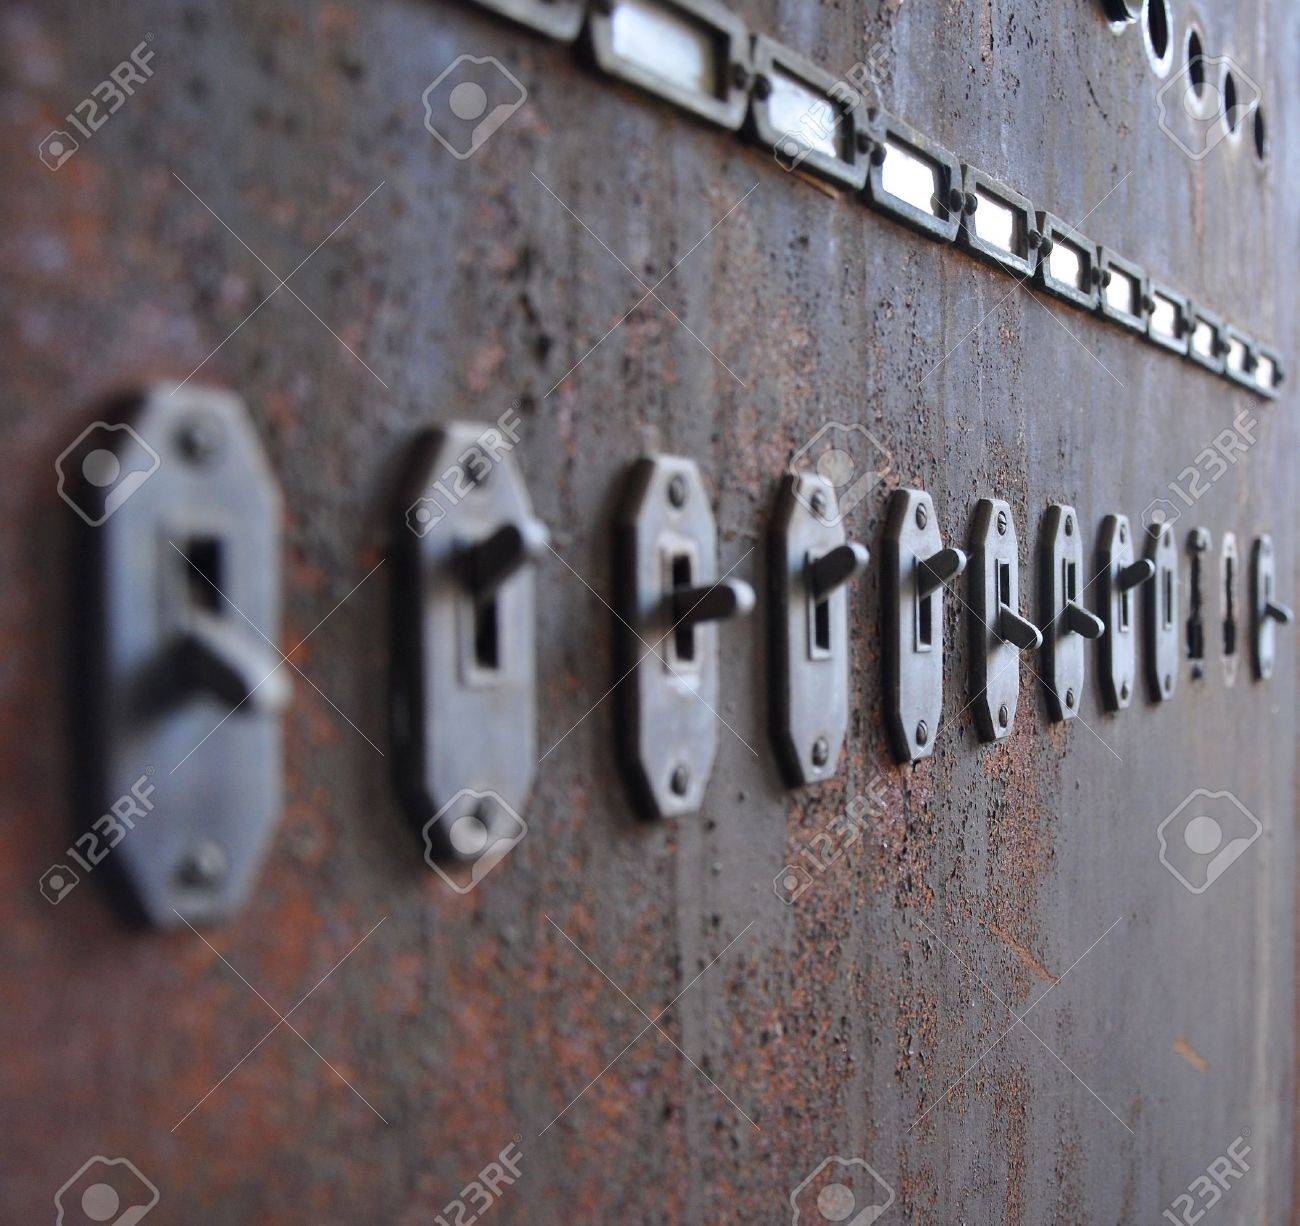 hight resolution of old switches to a fuse box stock photo picture and royalty free